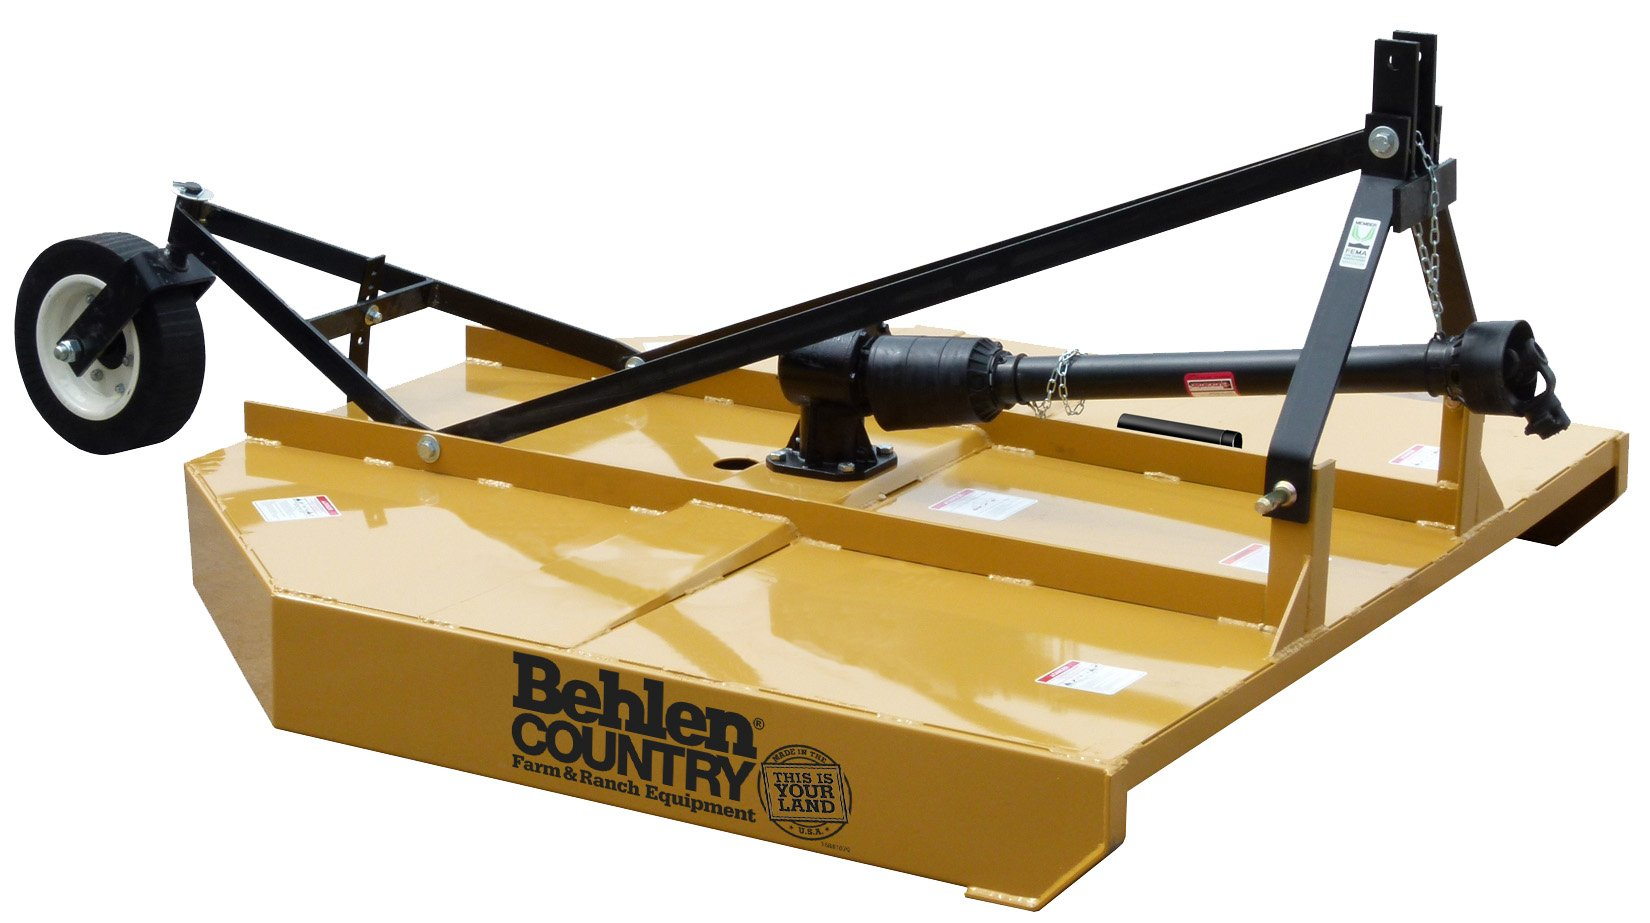 Behlen Country 80110040YEL Medium Duty Rotary Cutter, 4-Feet